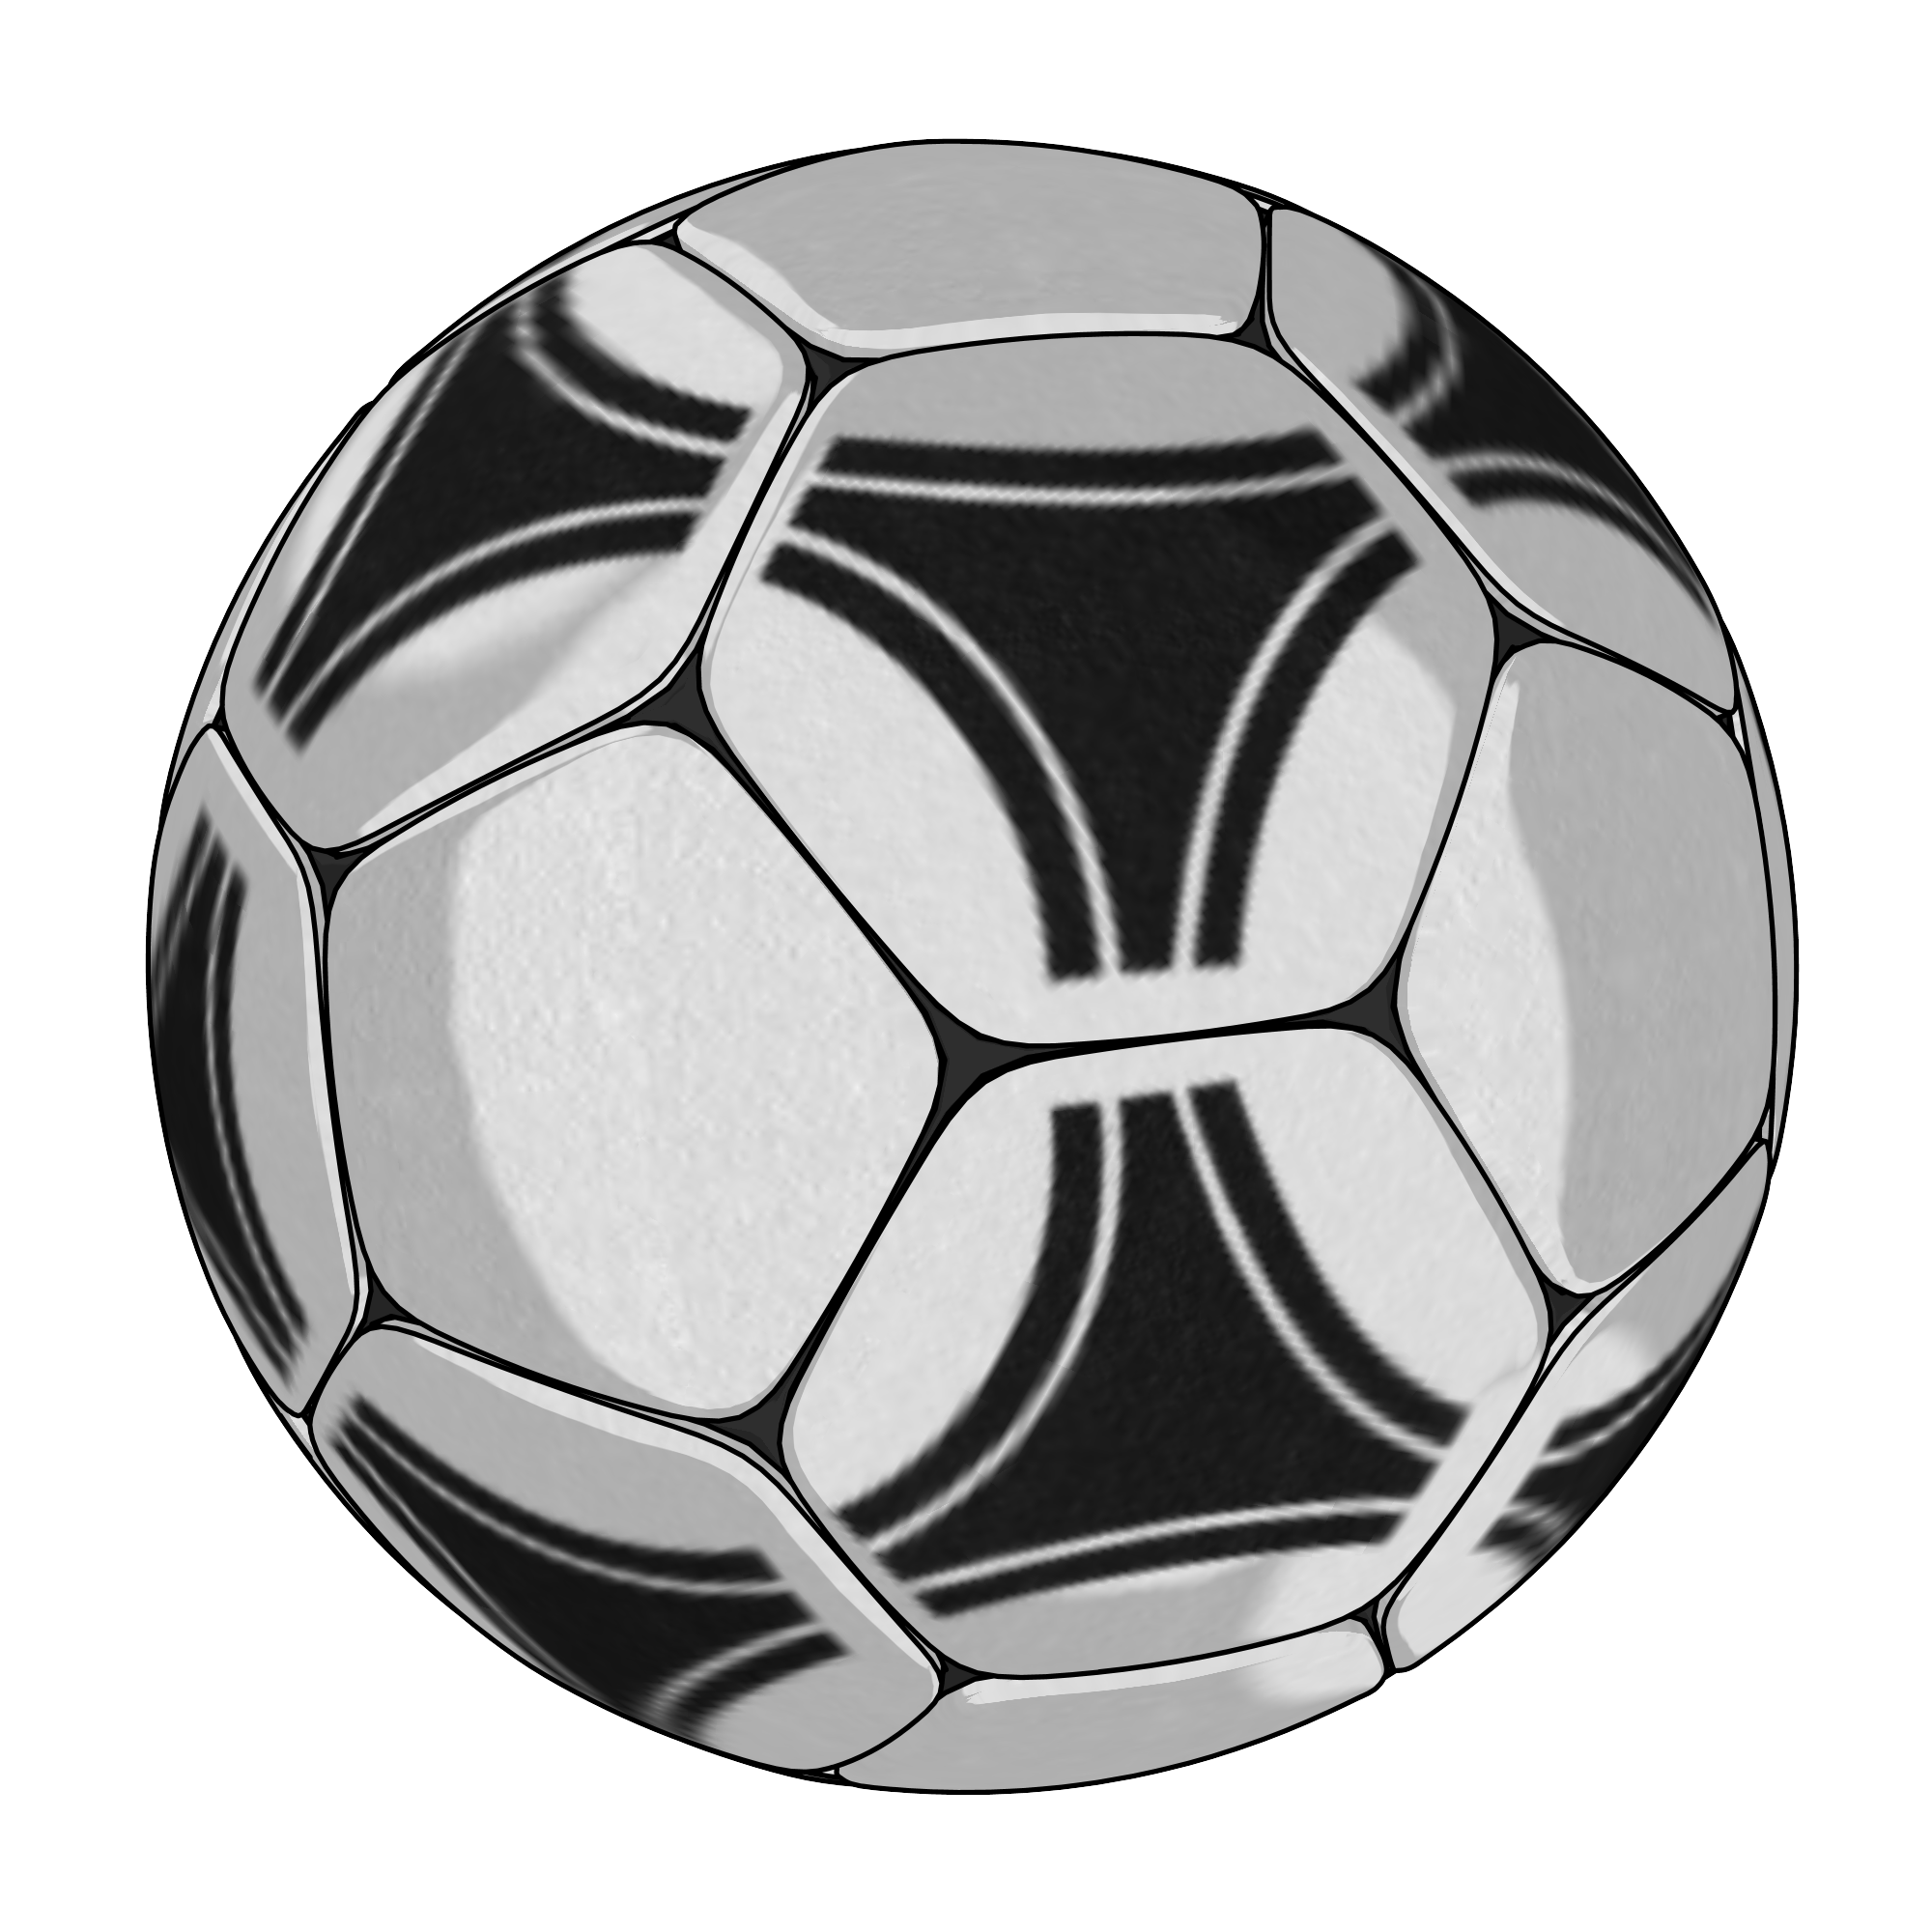 Box clipart soccer ball. Cartoon png picture clipartly